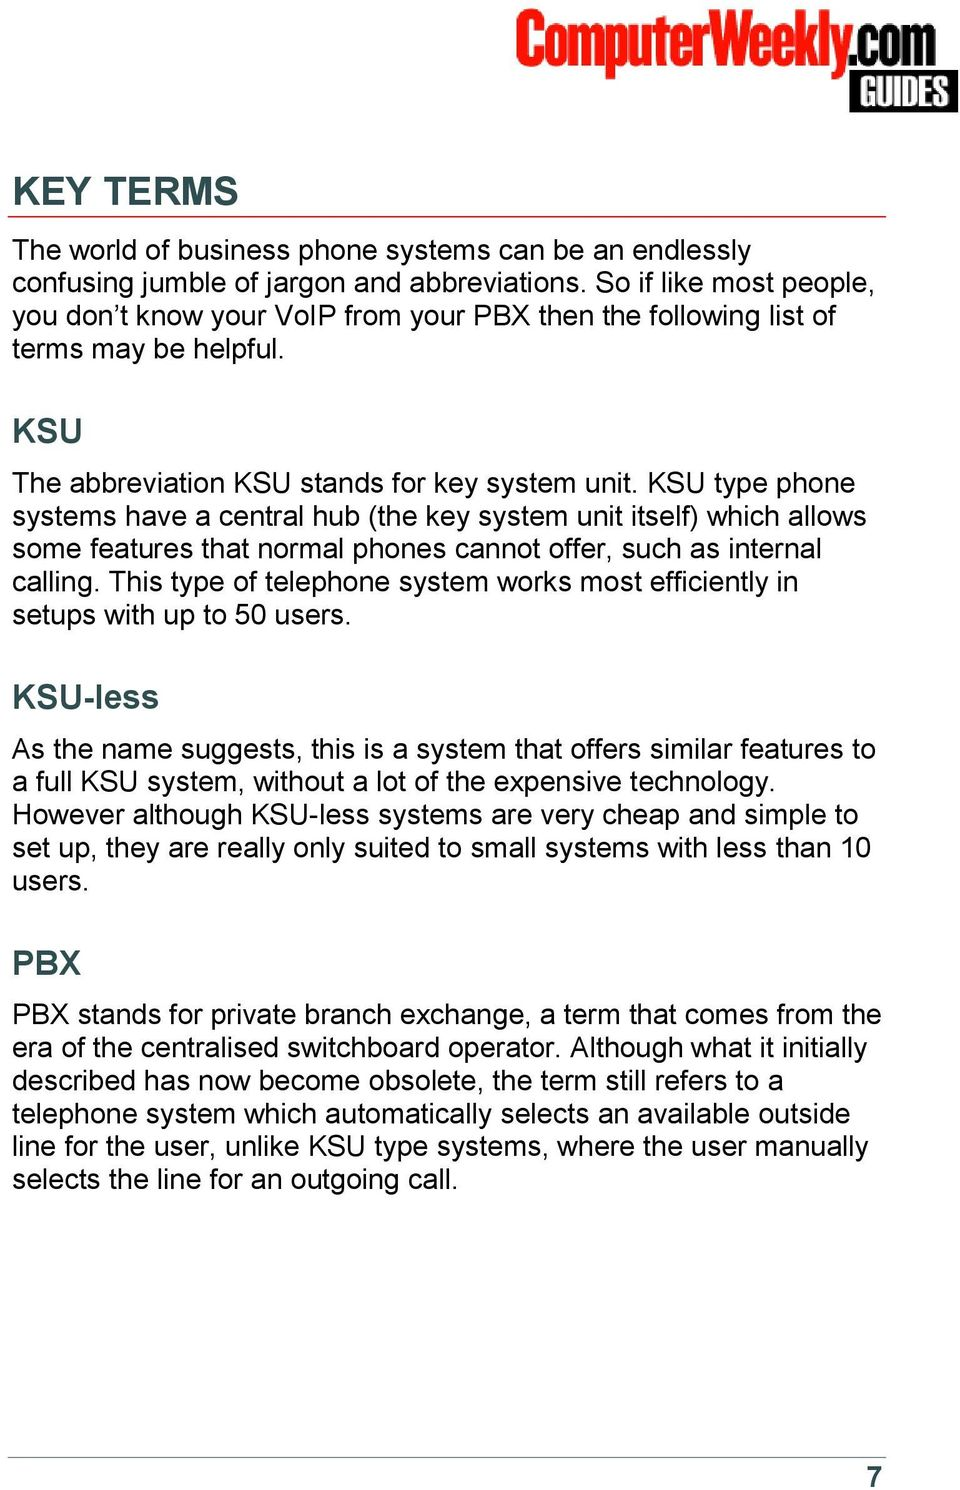 KSU type phone systems have a central hub (the key system unit itself) which allows some features that normal phones cannot offer, such as internal calling.